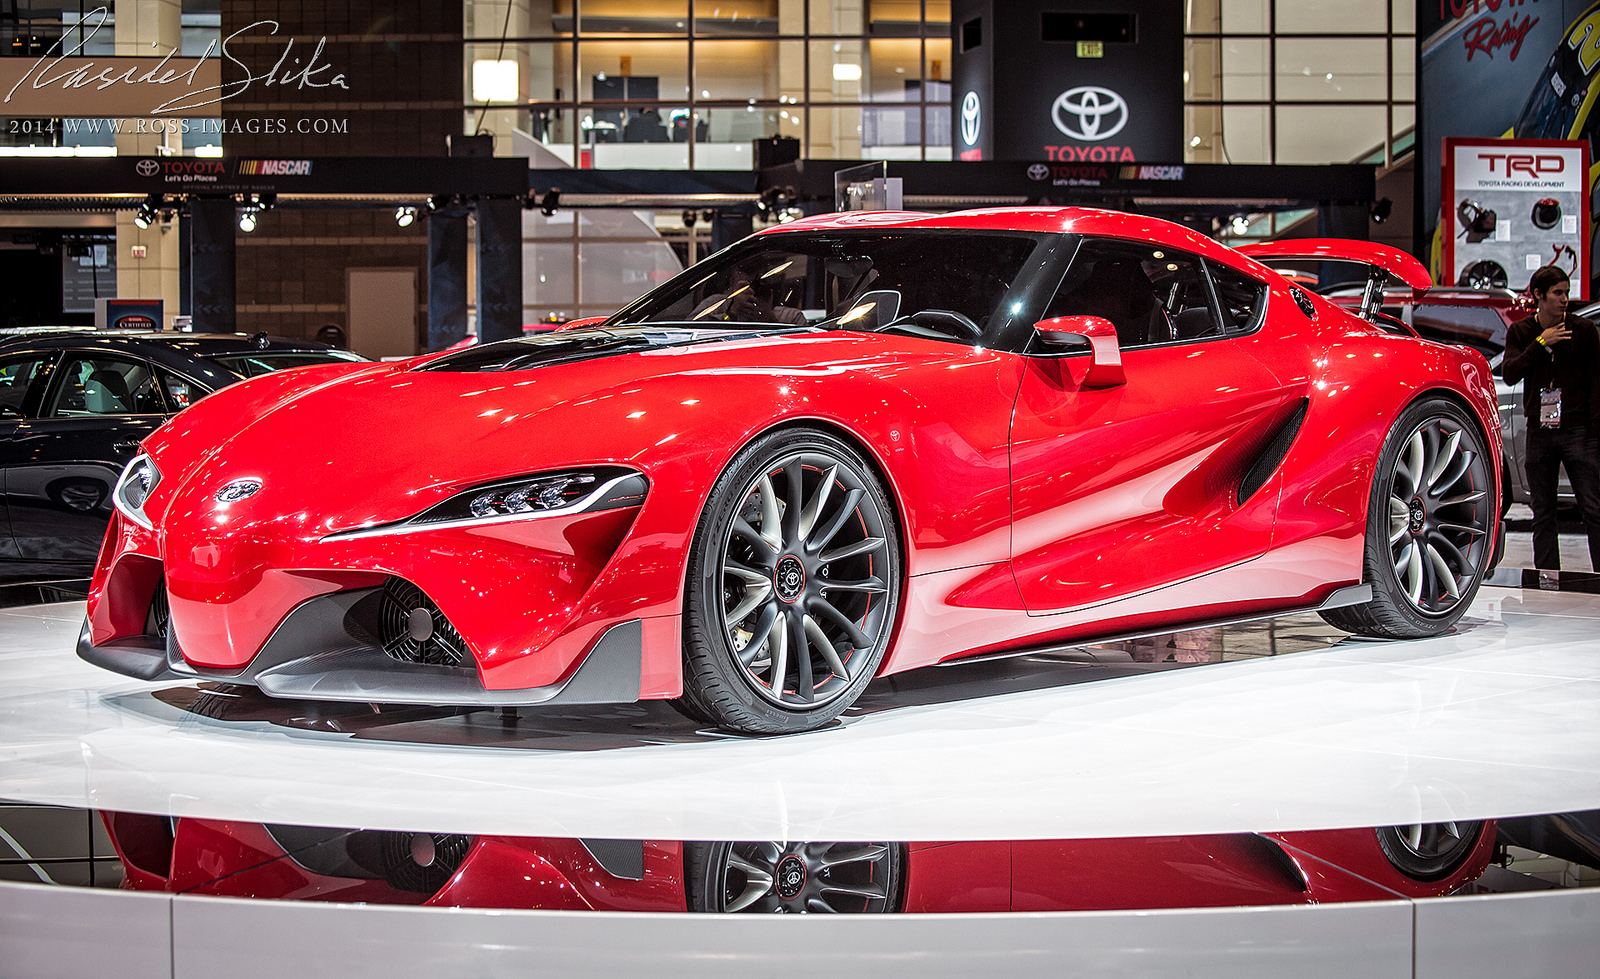 Red Toyota FT 1 Concept at Various Auto Shows amp Events